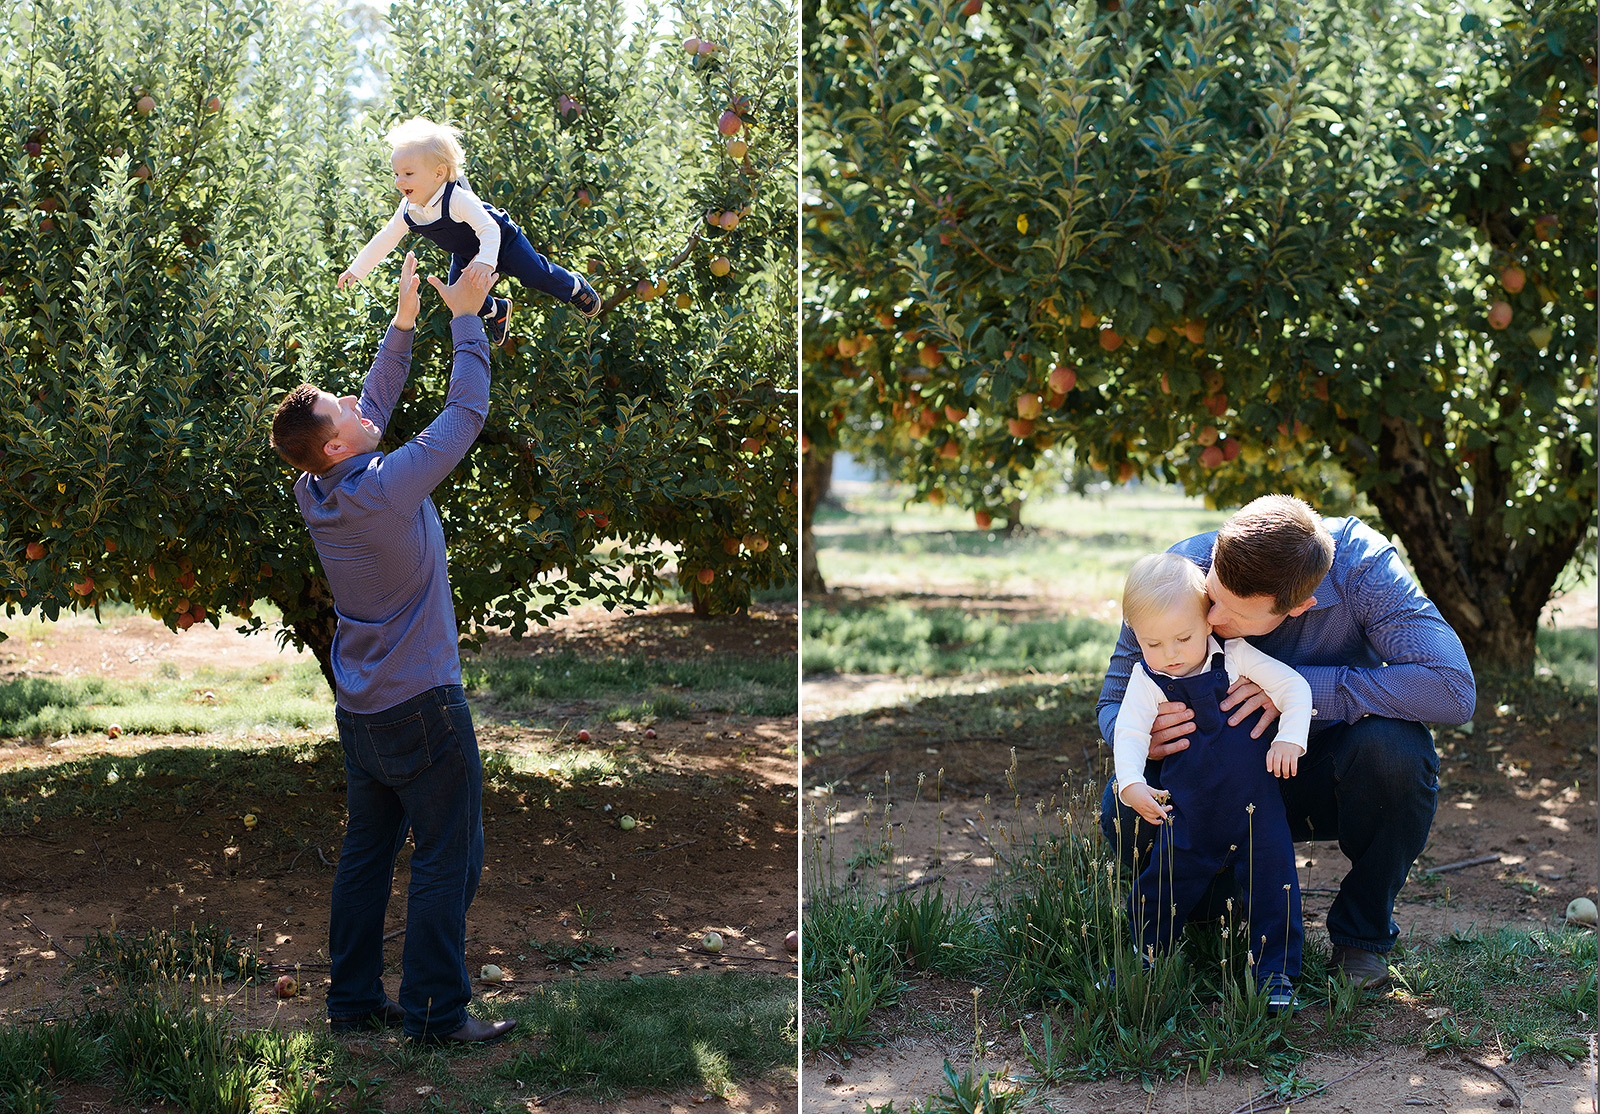 Father and Son Playing Among Apple Trees in Apple Hill